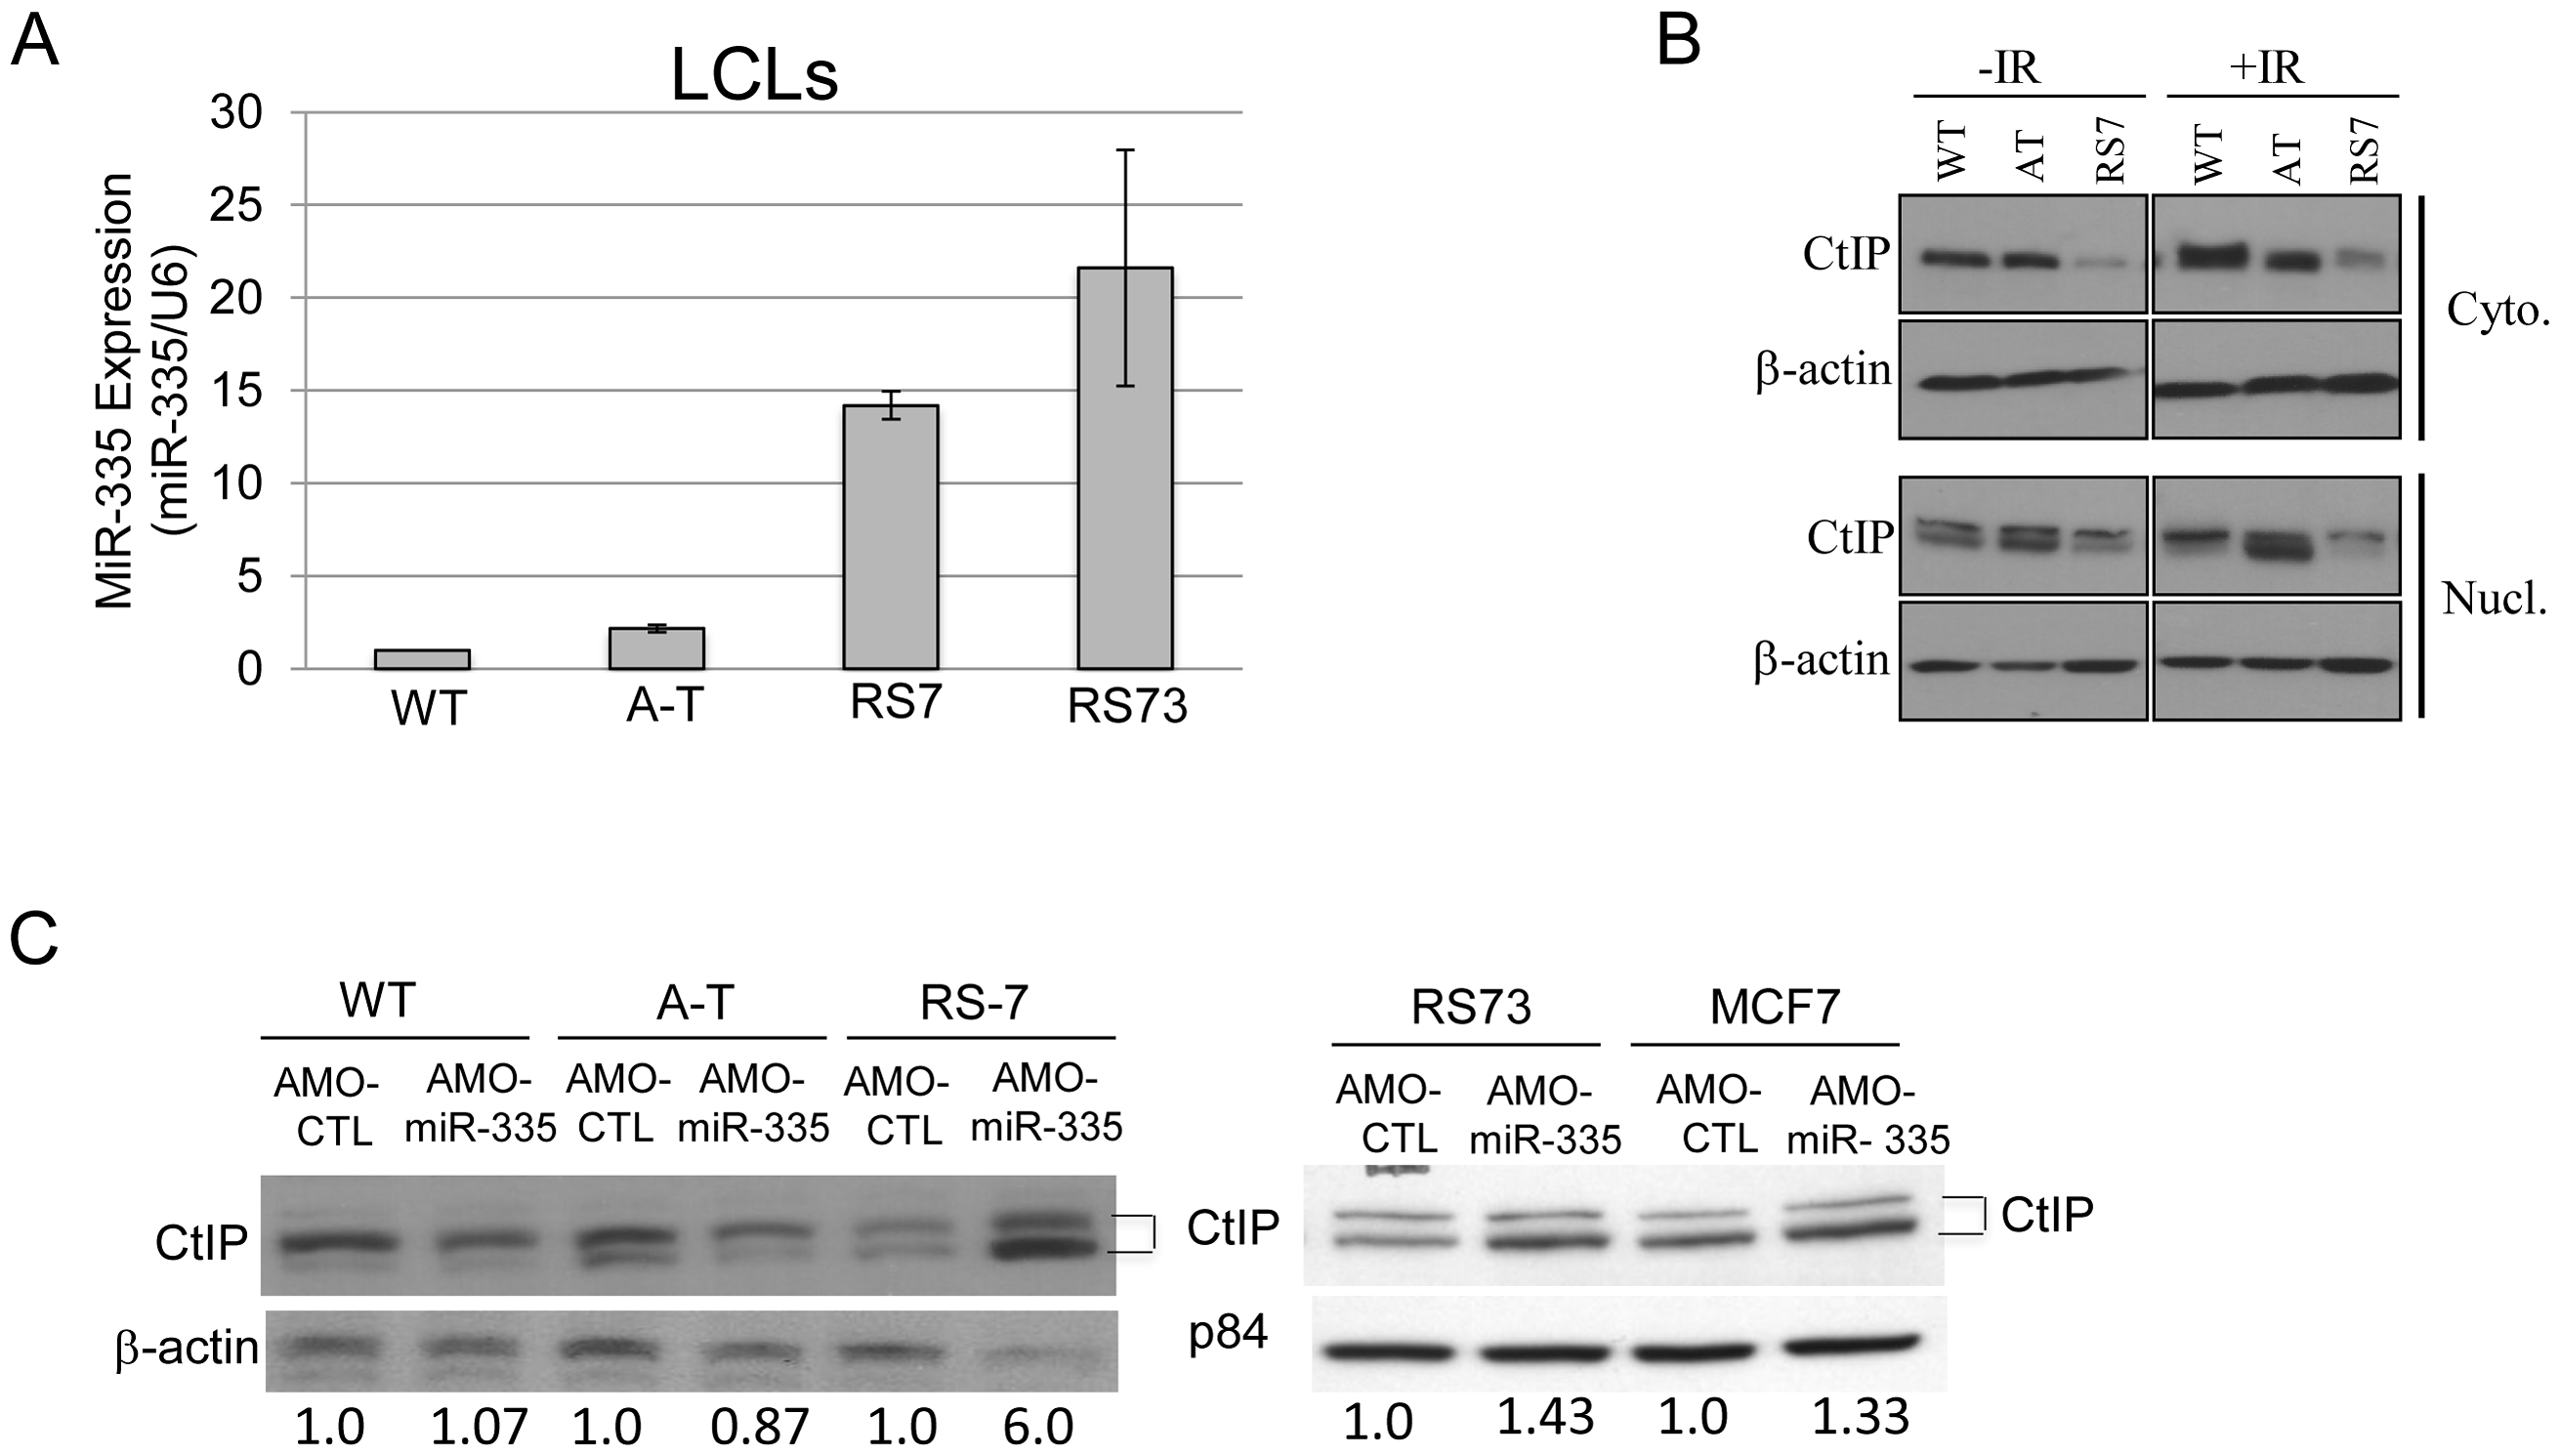 MiR-335 was constitutively overexpressed in RS7 and RS73 LCLs.